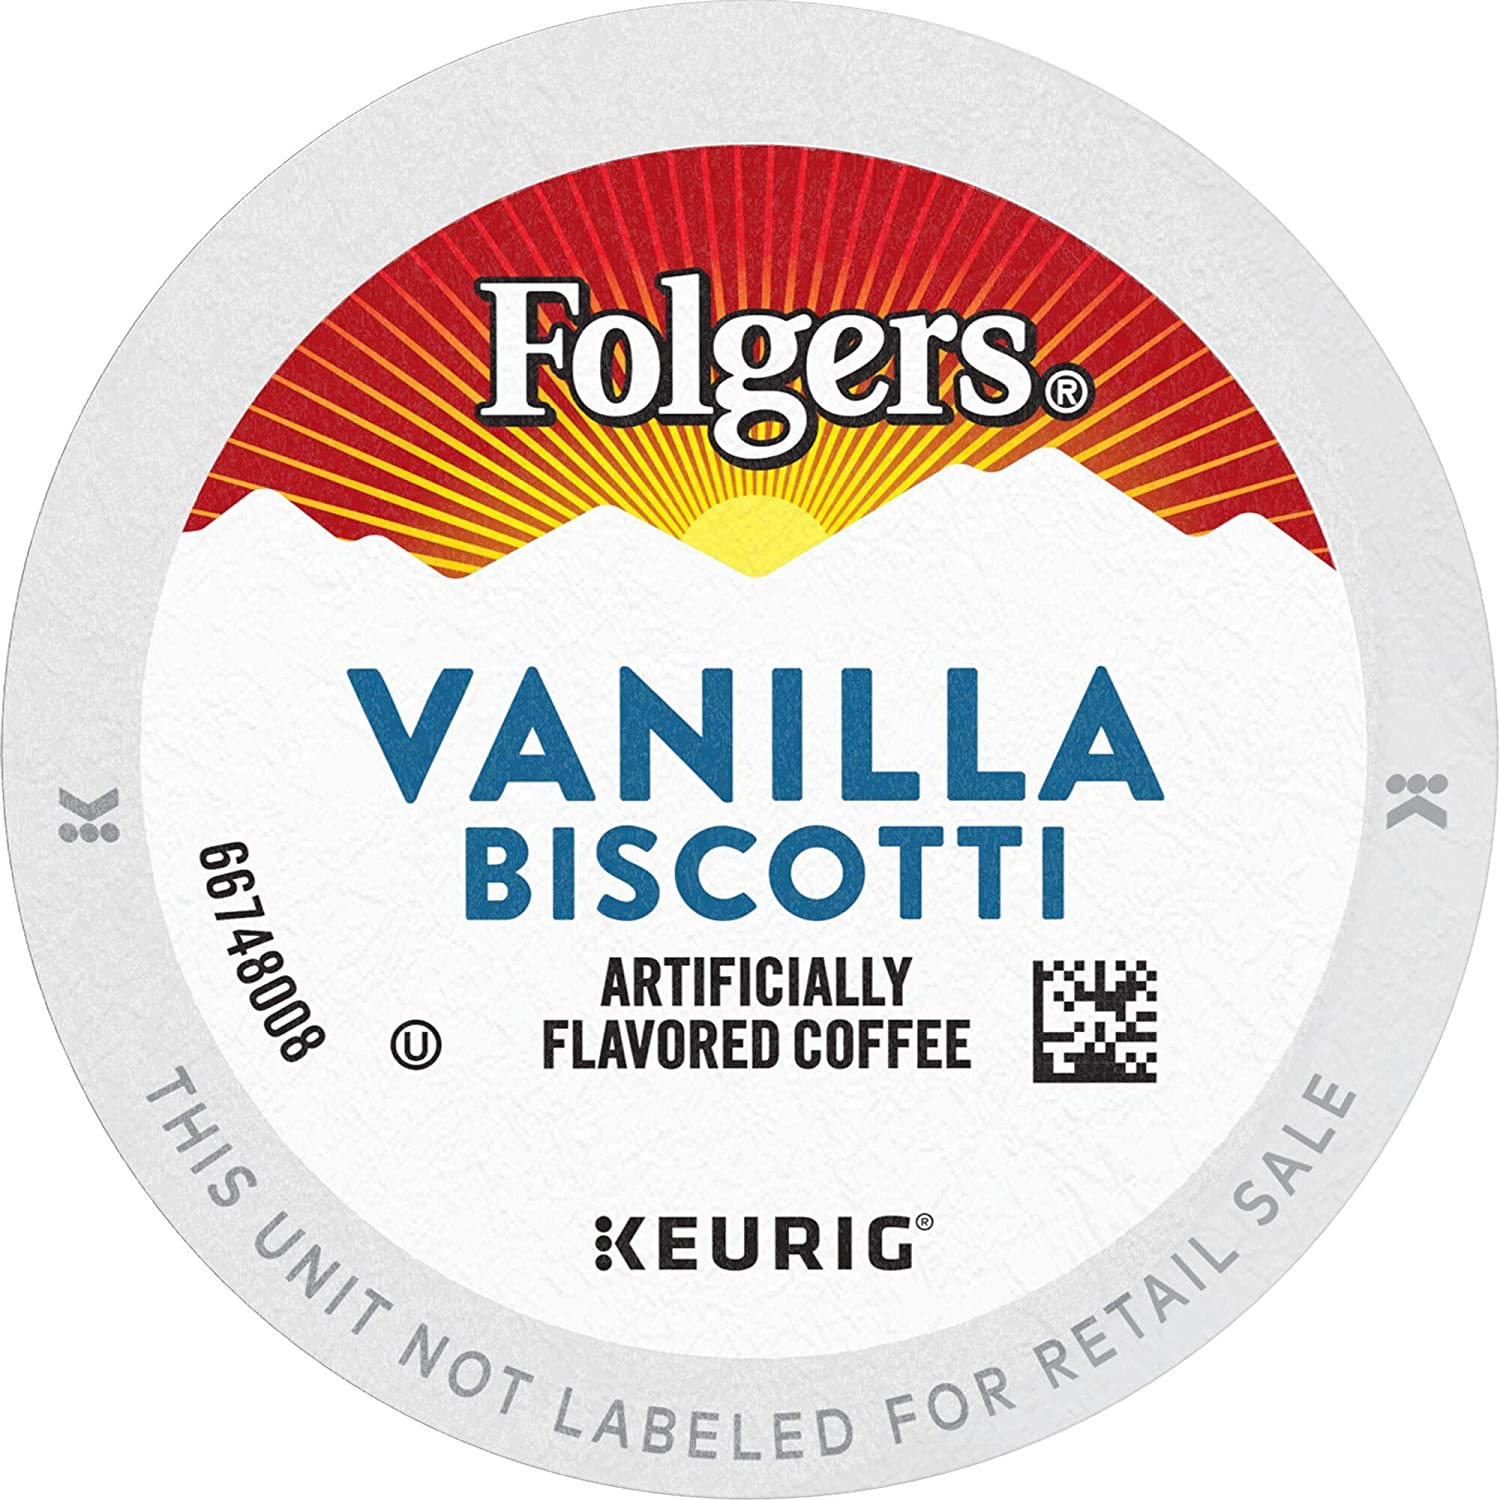 Folgers Vanilla Biscotti Flavored Coffee, 96 K Cups for Keurig Coffee Makers